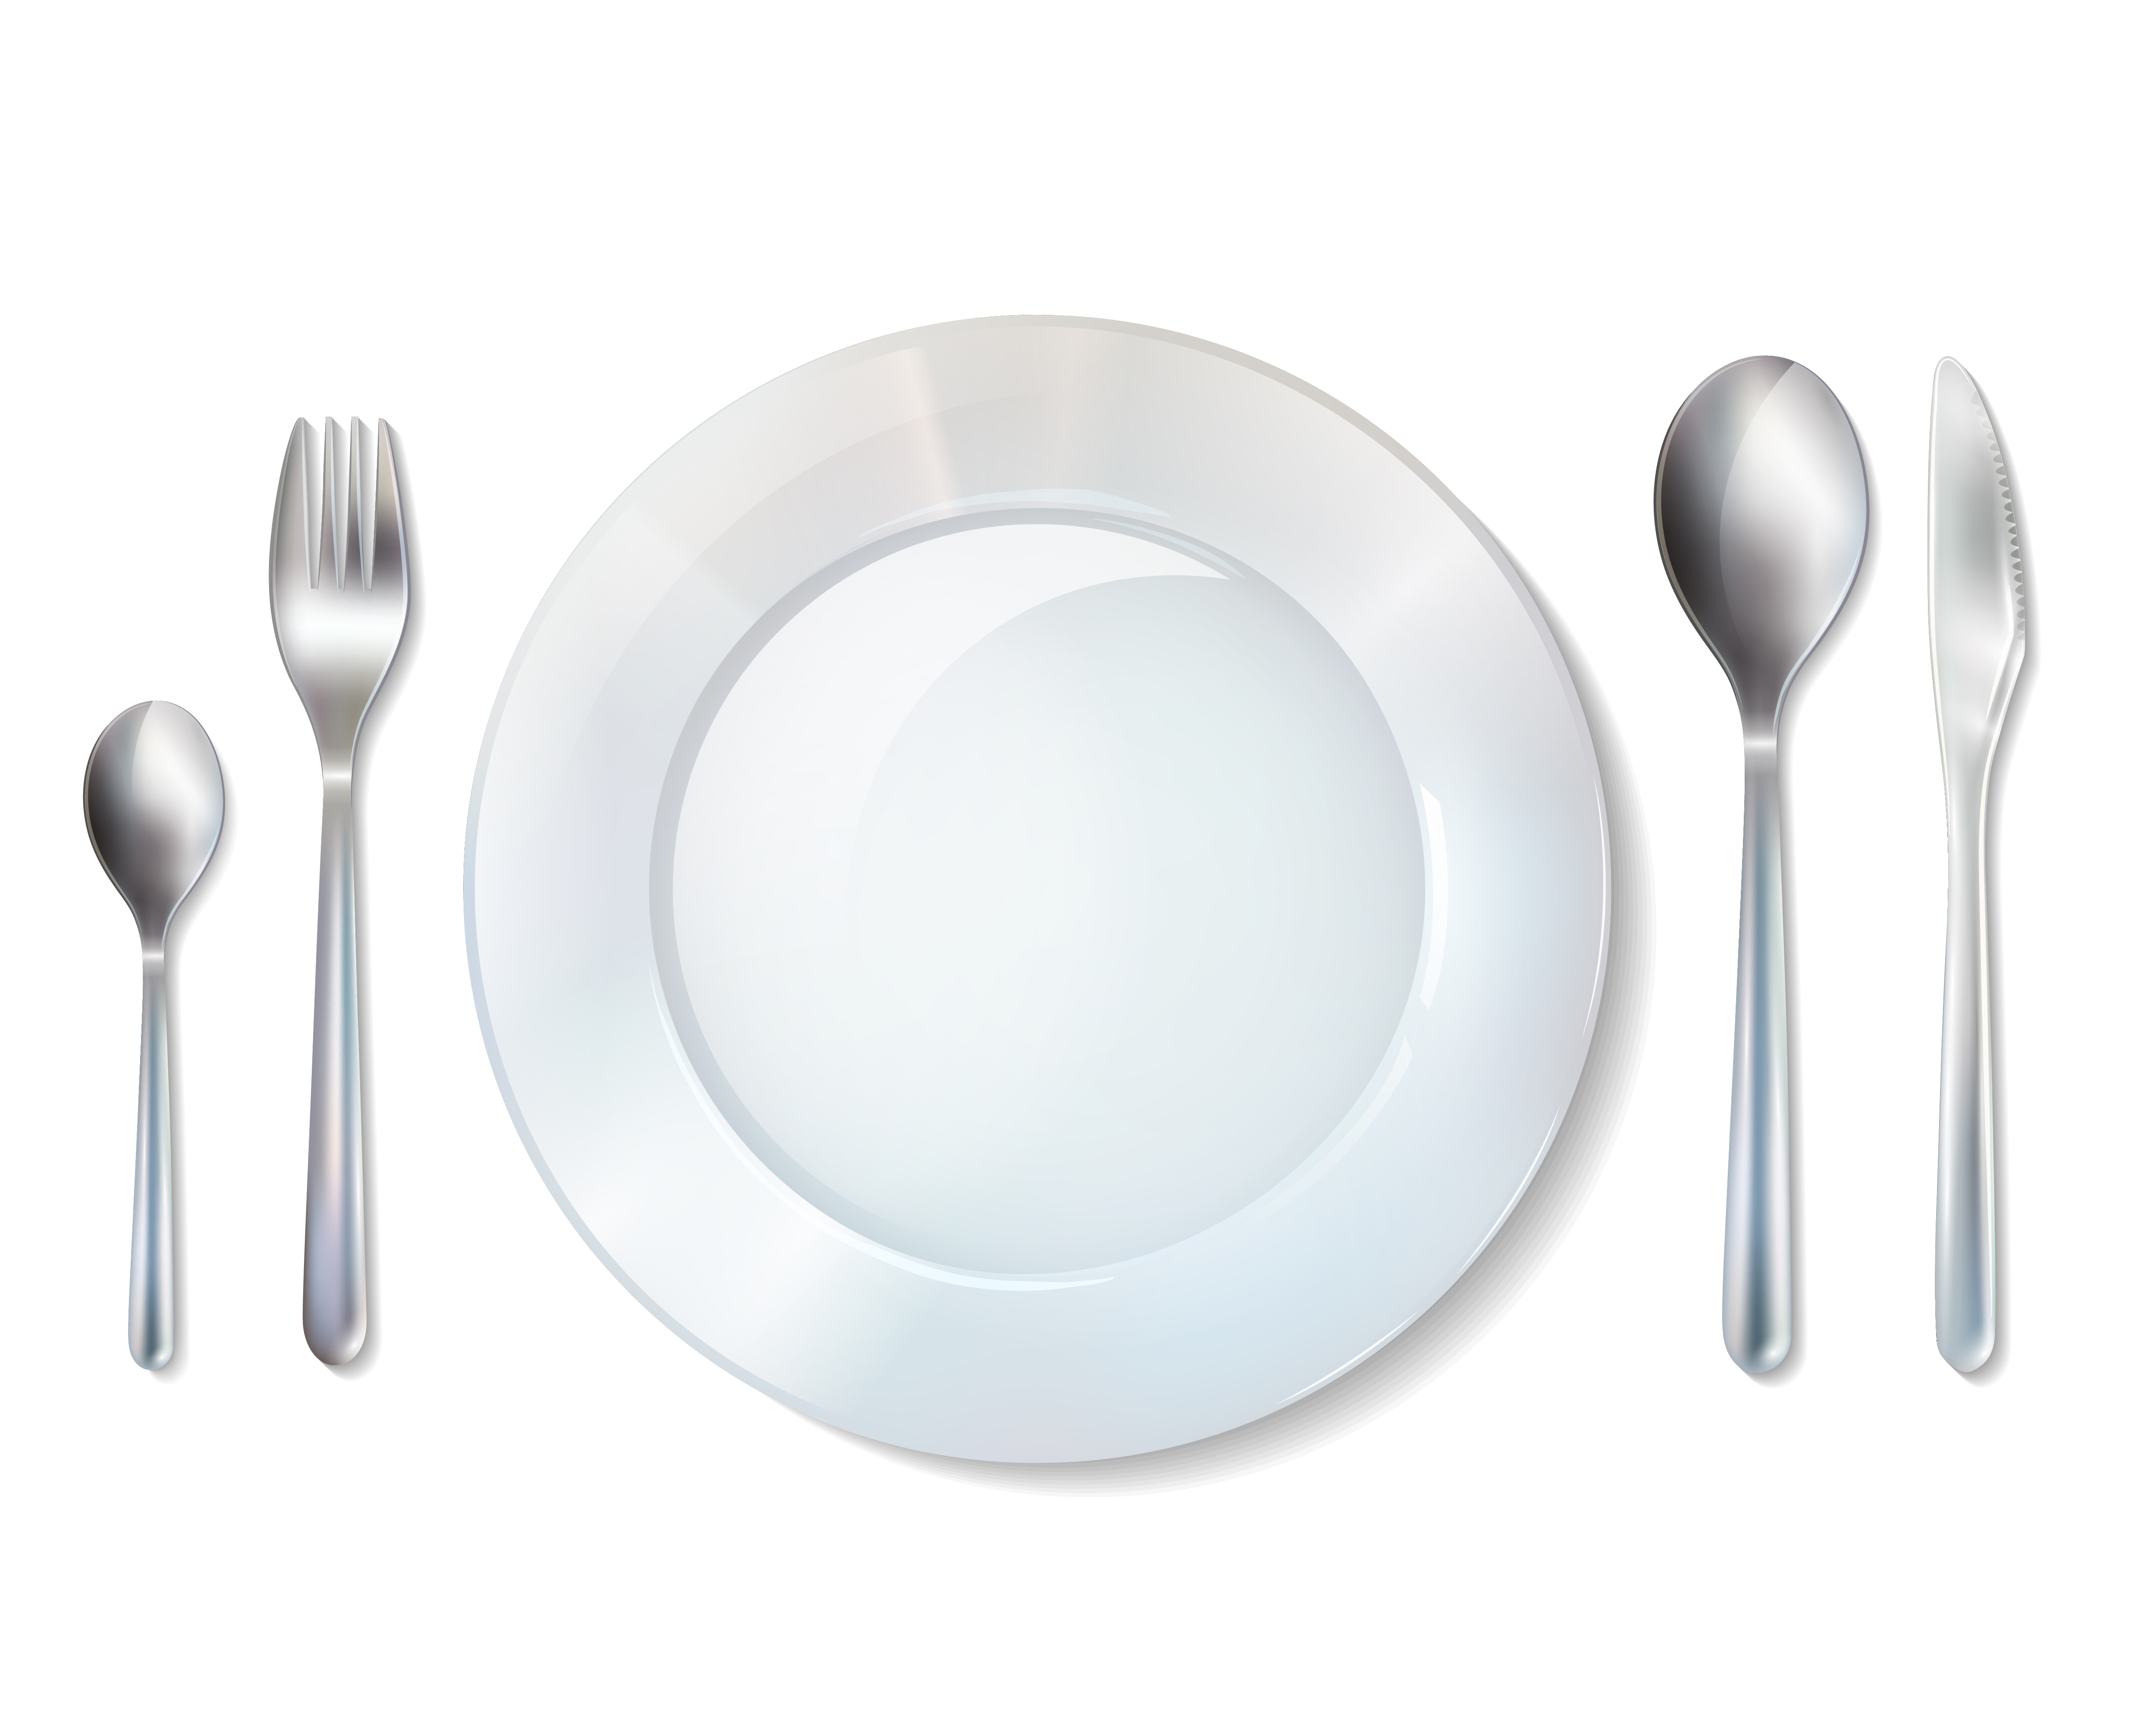 plate and cutlery realistic set image download free